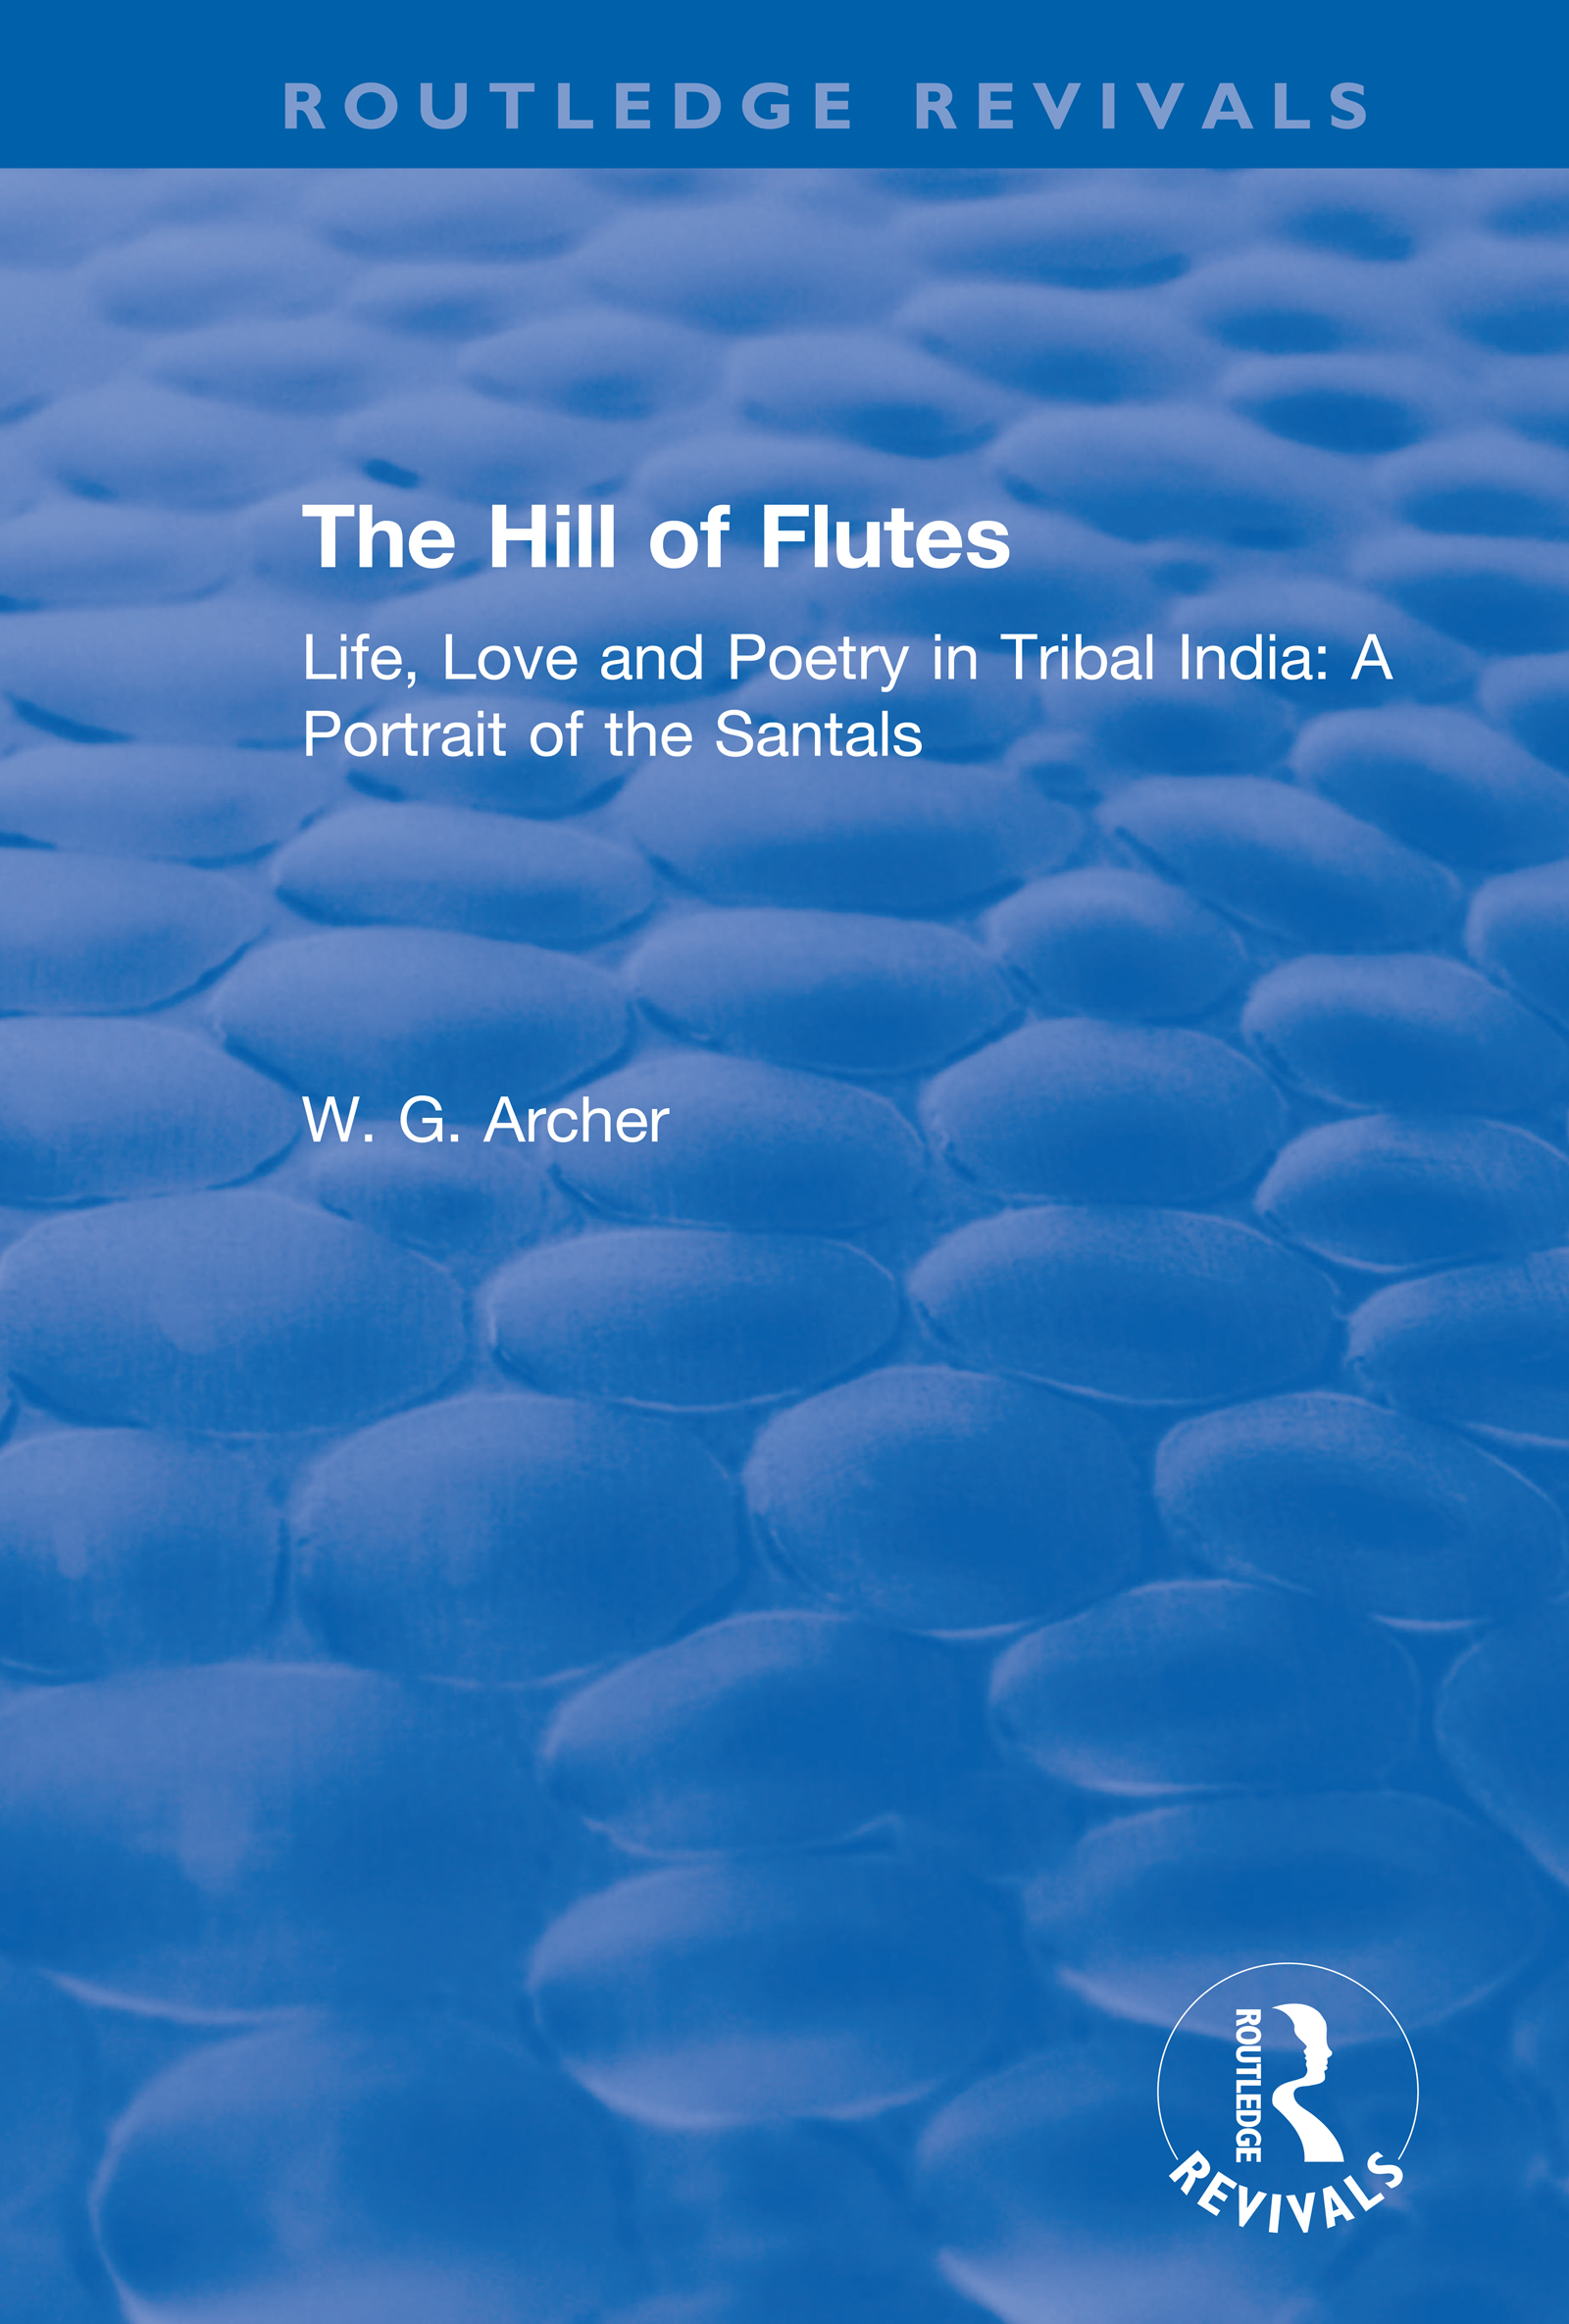 The Hill of Flutes